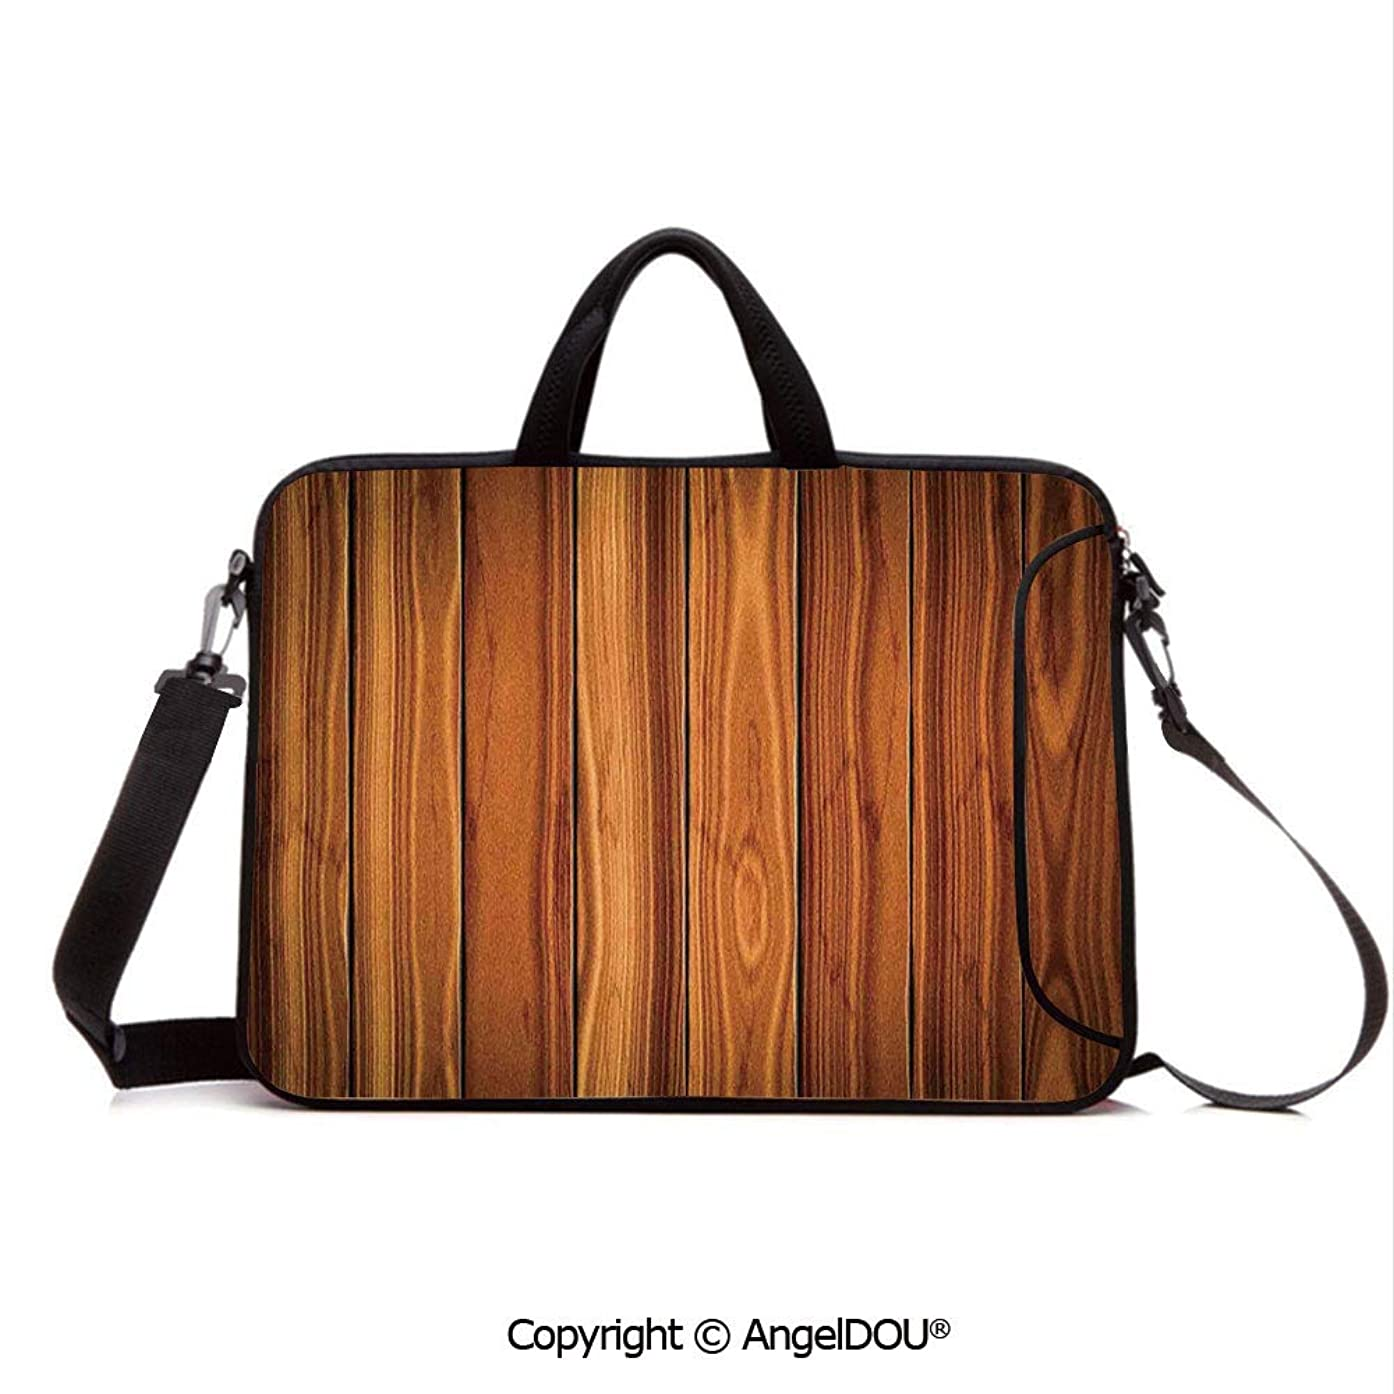 AngelDOU Neoprene Laptop Shoulder Bag Case Sleeve with Handle and Extra Pocket Tall Decorative Bound Wood Line Timber Trunk Red Maple Stem Birch Branch Image Compatible with MacBook/Ultrabook/HP/Ace